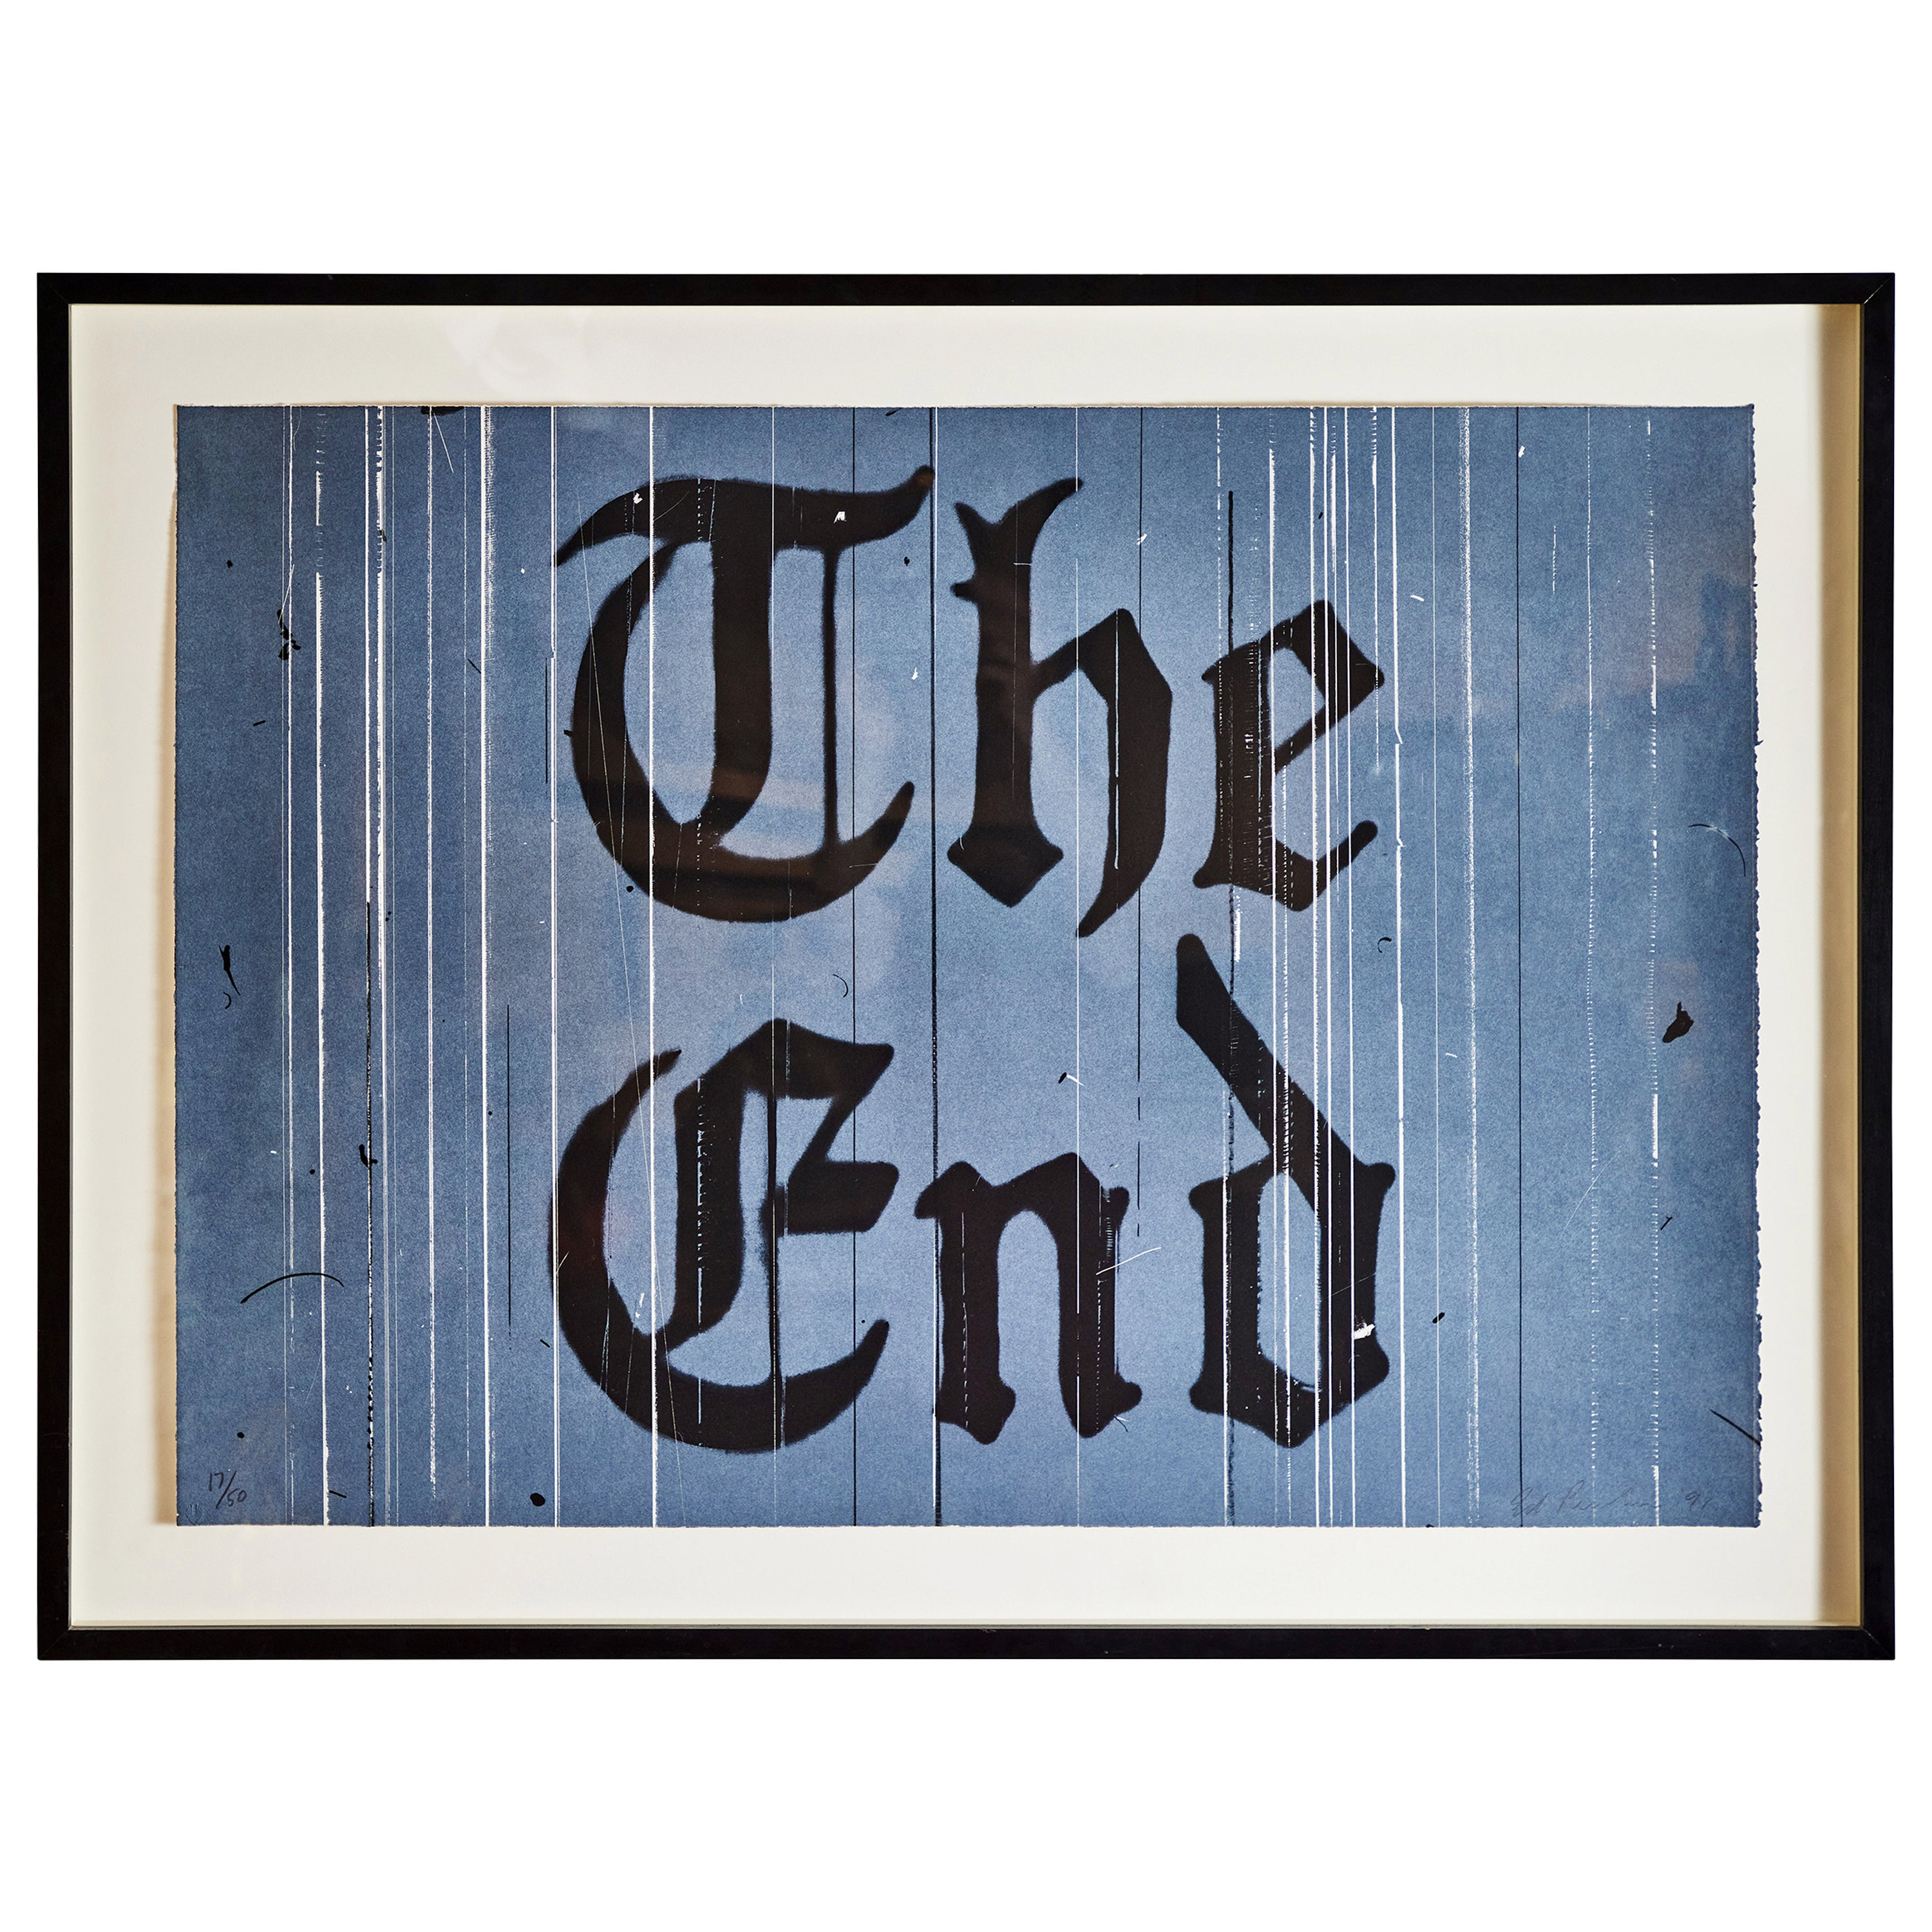 Signed, Numbered, Ed Ruscha Lithograph